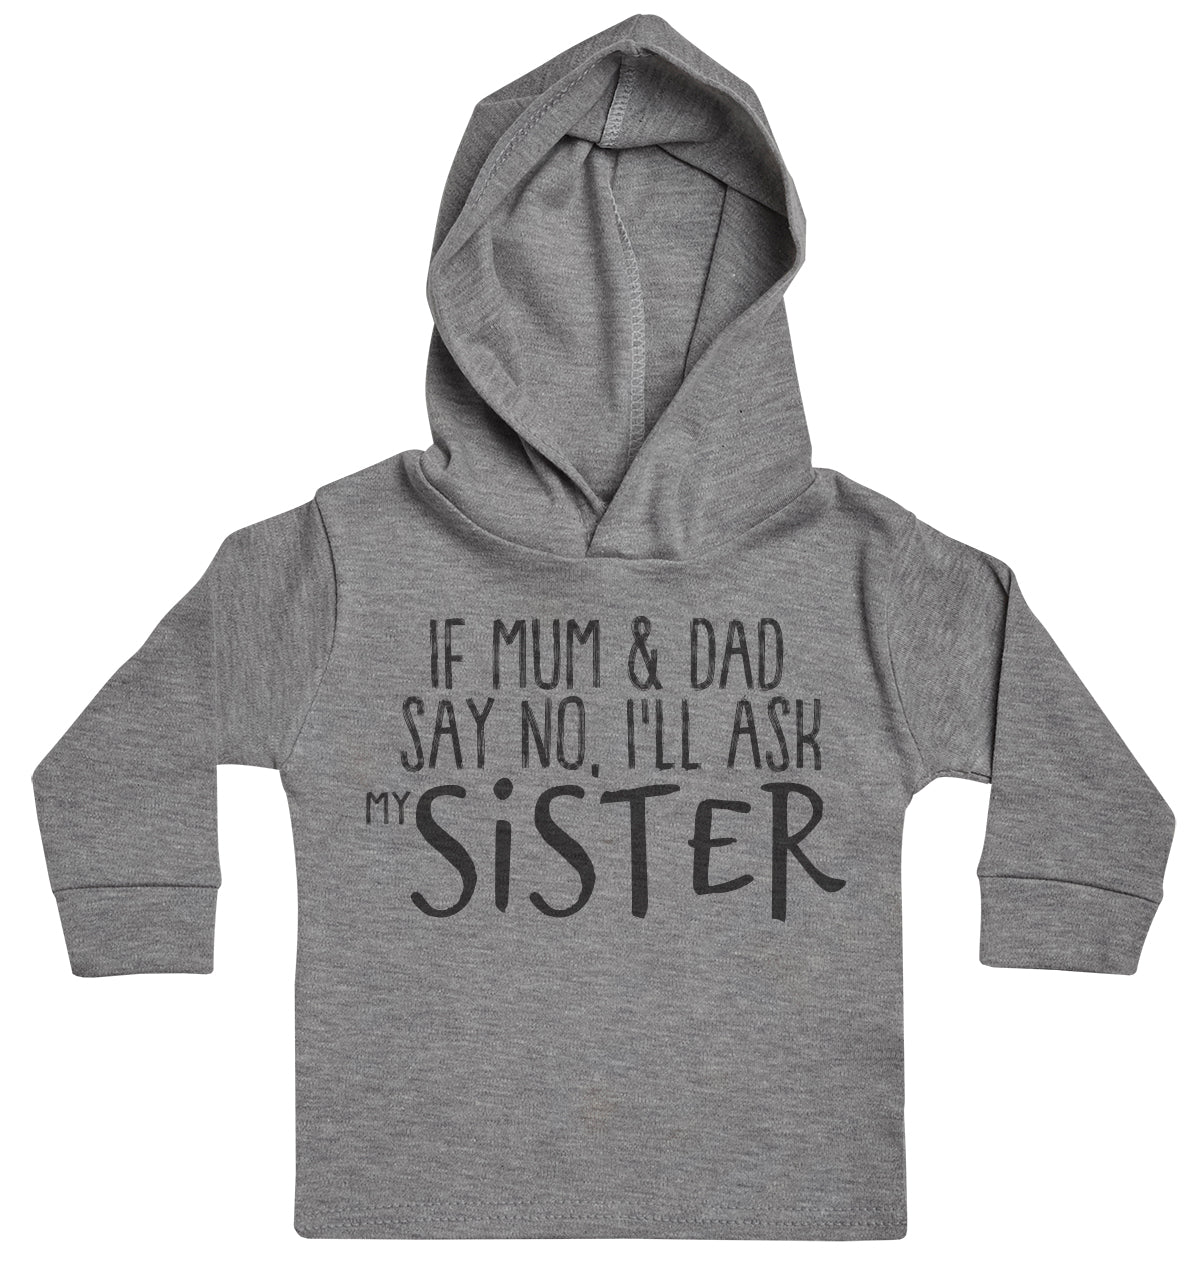 If Mum & Dad Say No, I'll Ask My Sister Baby Hoody